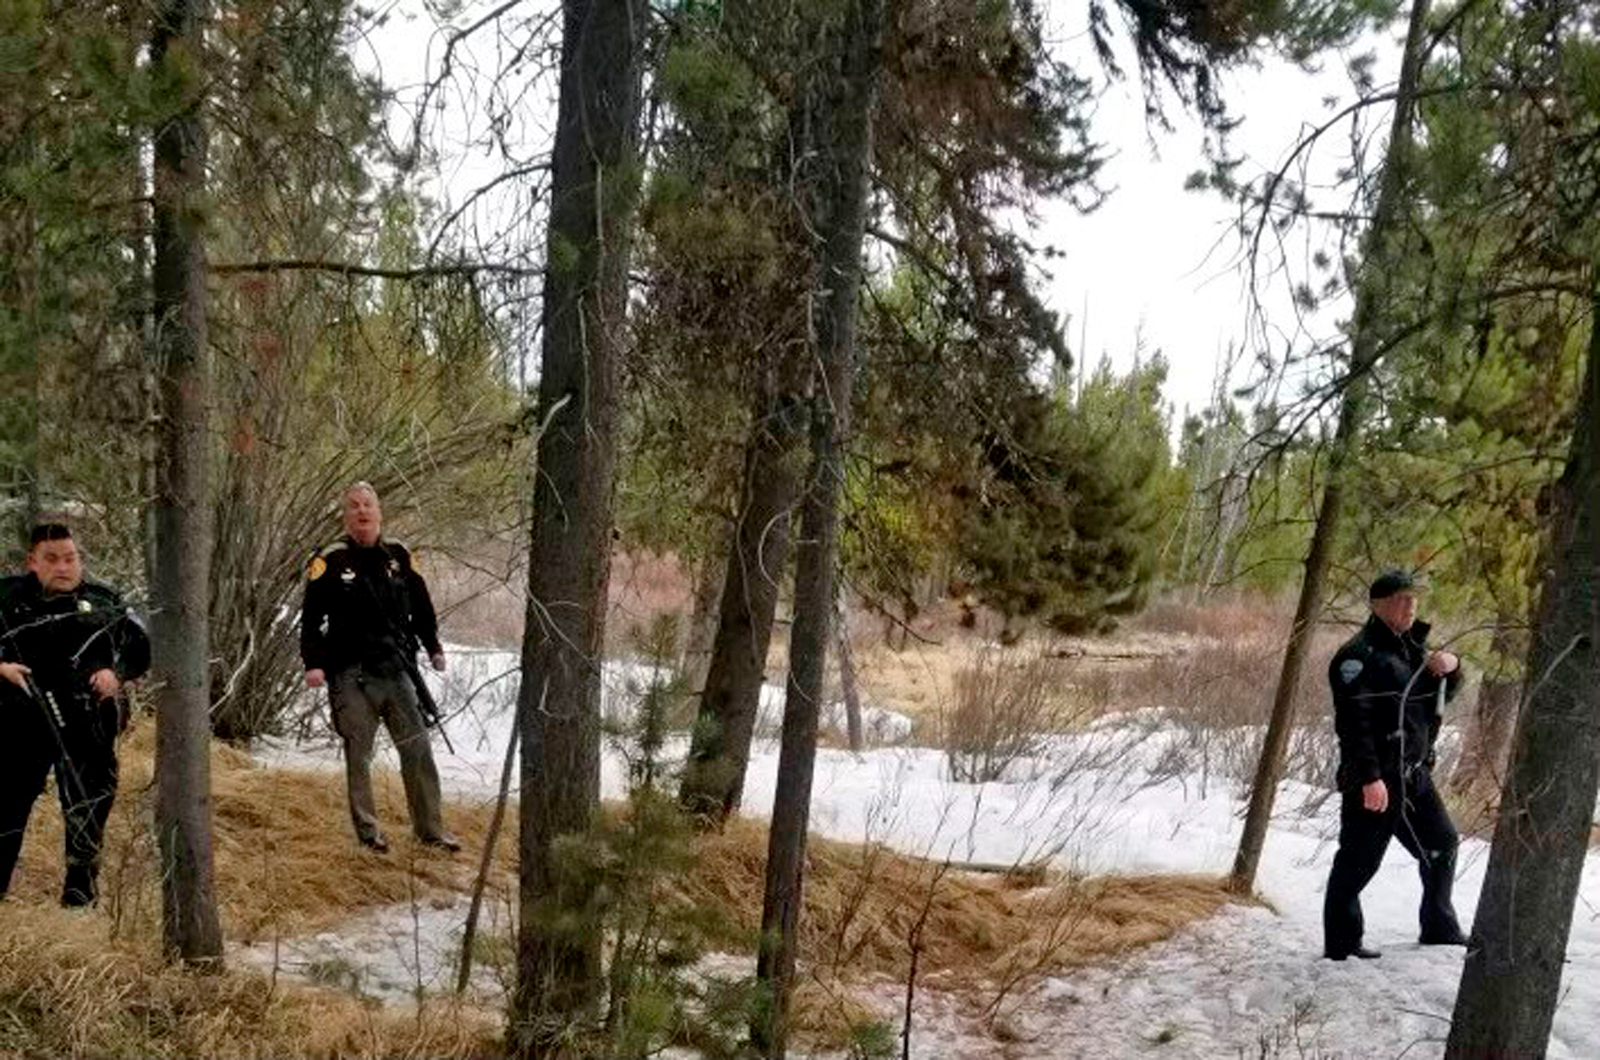 Backcountry guide mauled to death while fishing near Yellowstone National Park